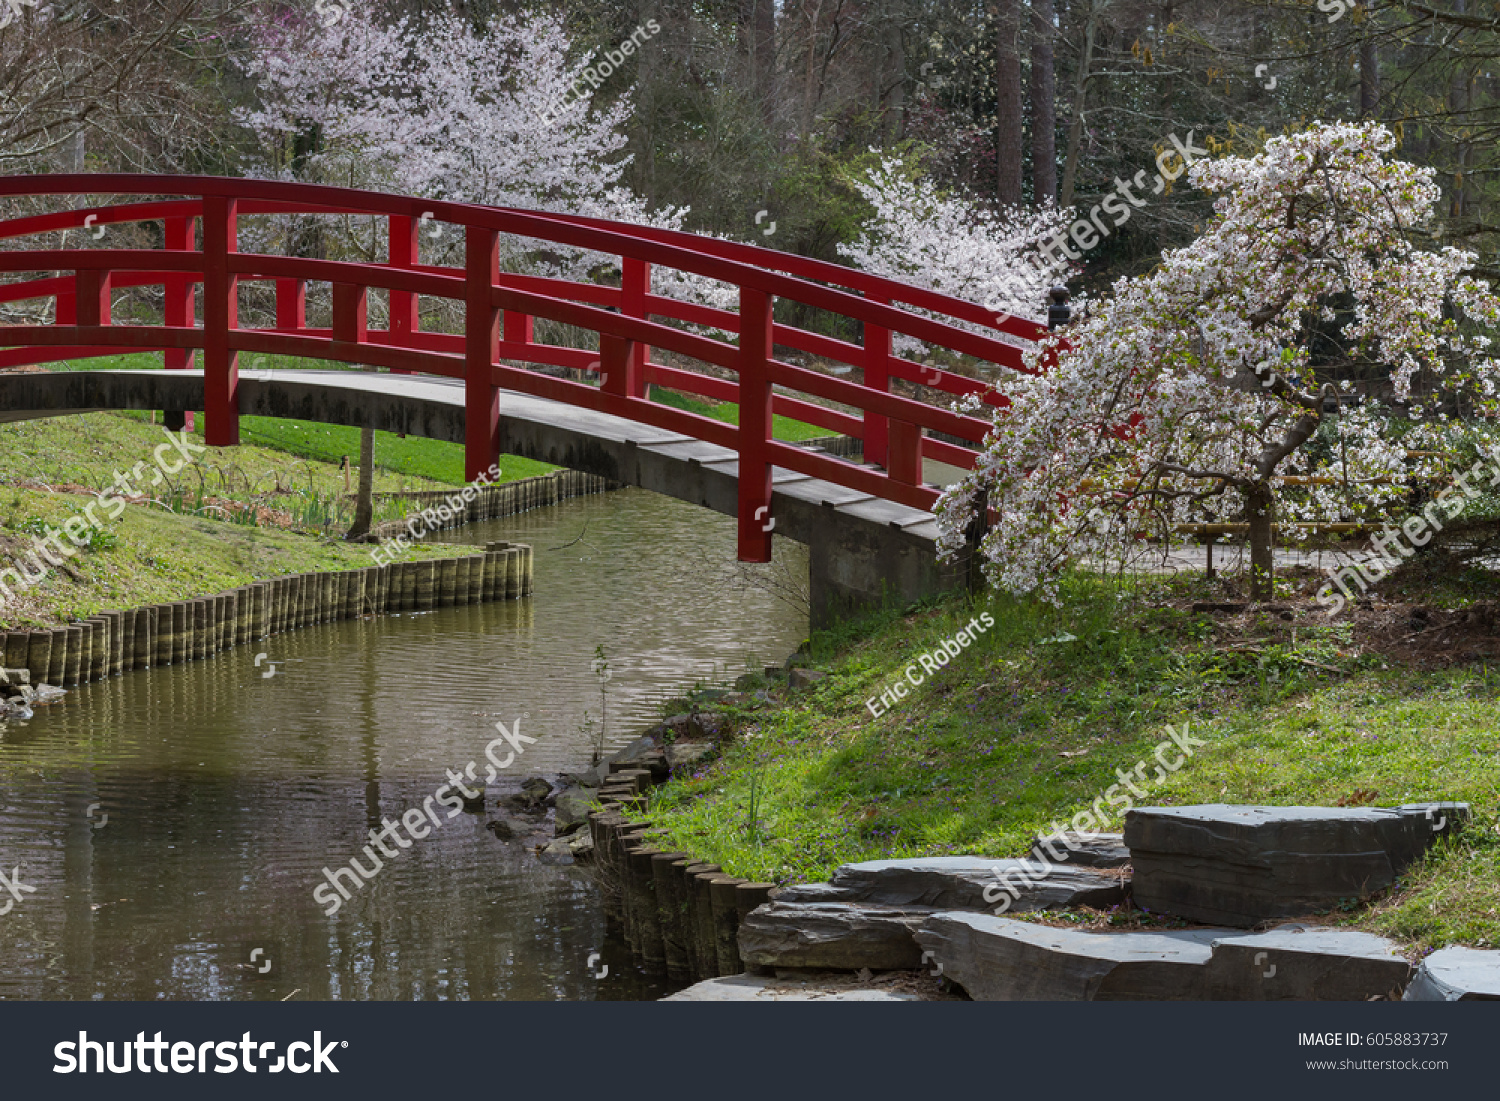 Amazing Japanese Garden Scene At Duke Gardens In Durham, NC. The Cherry  Blossoms Are